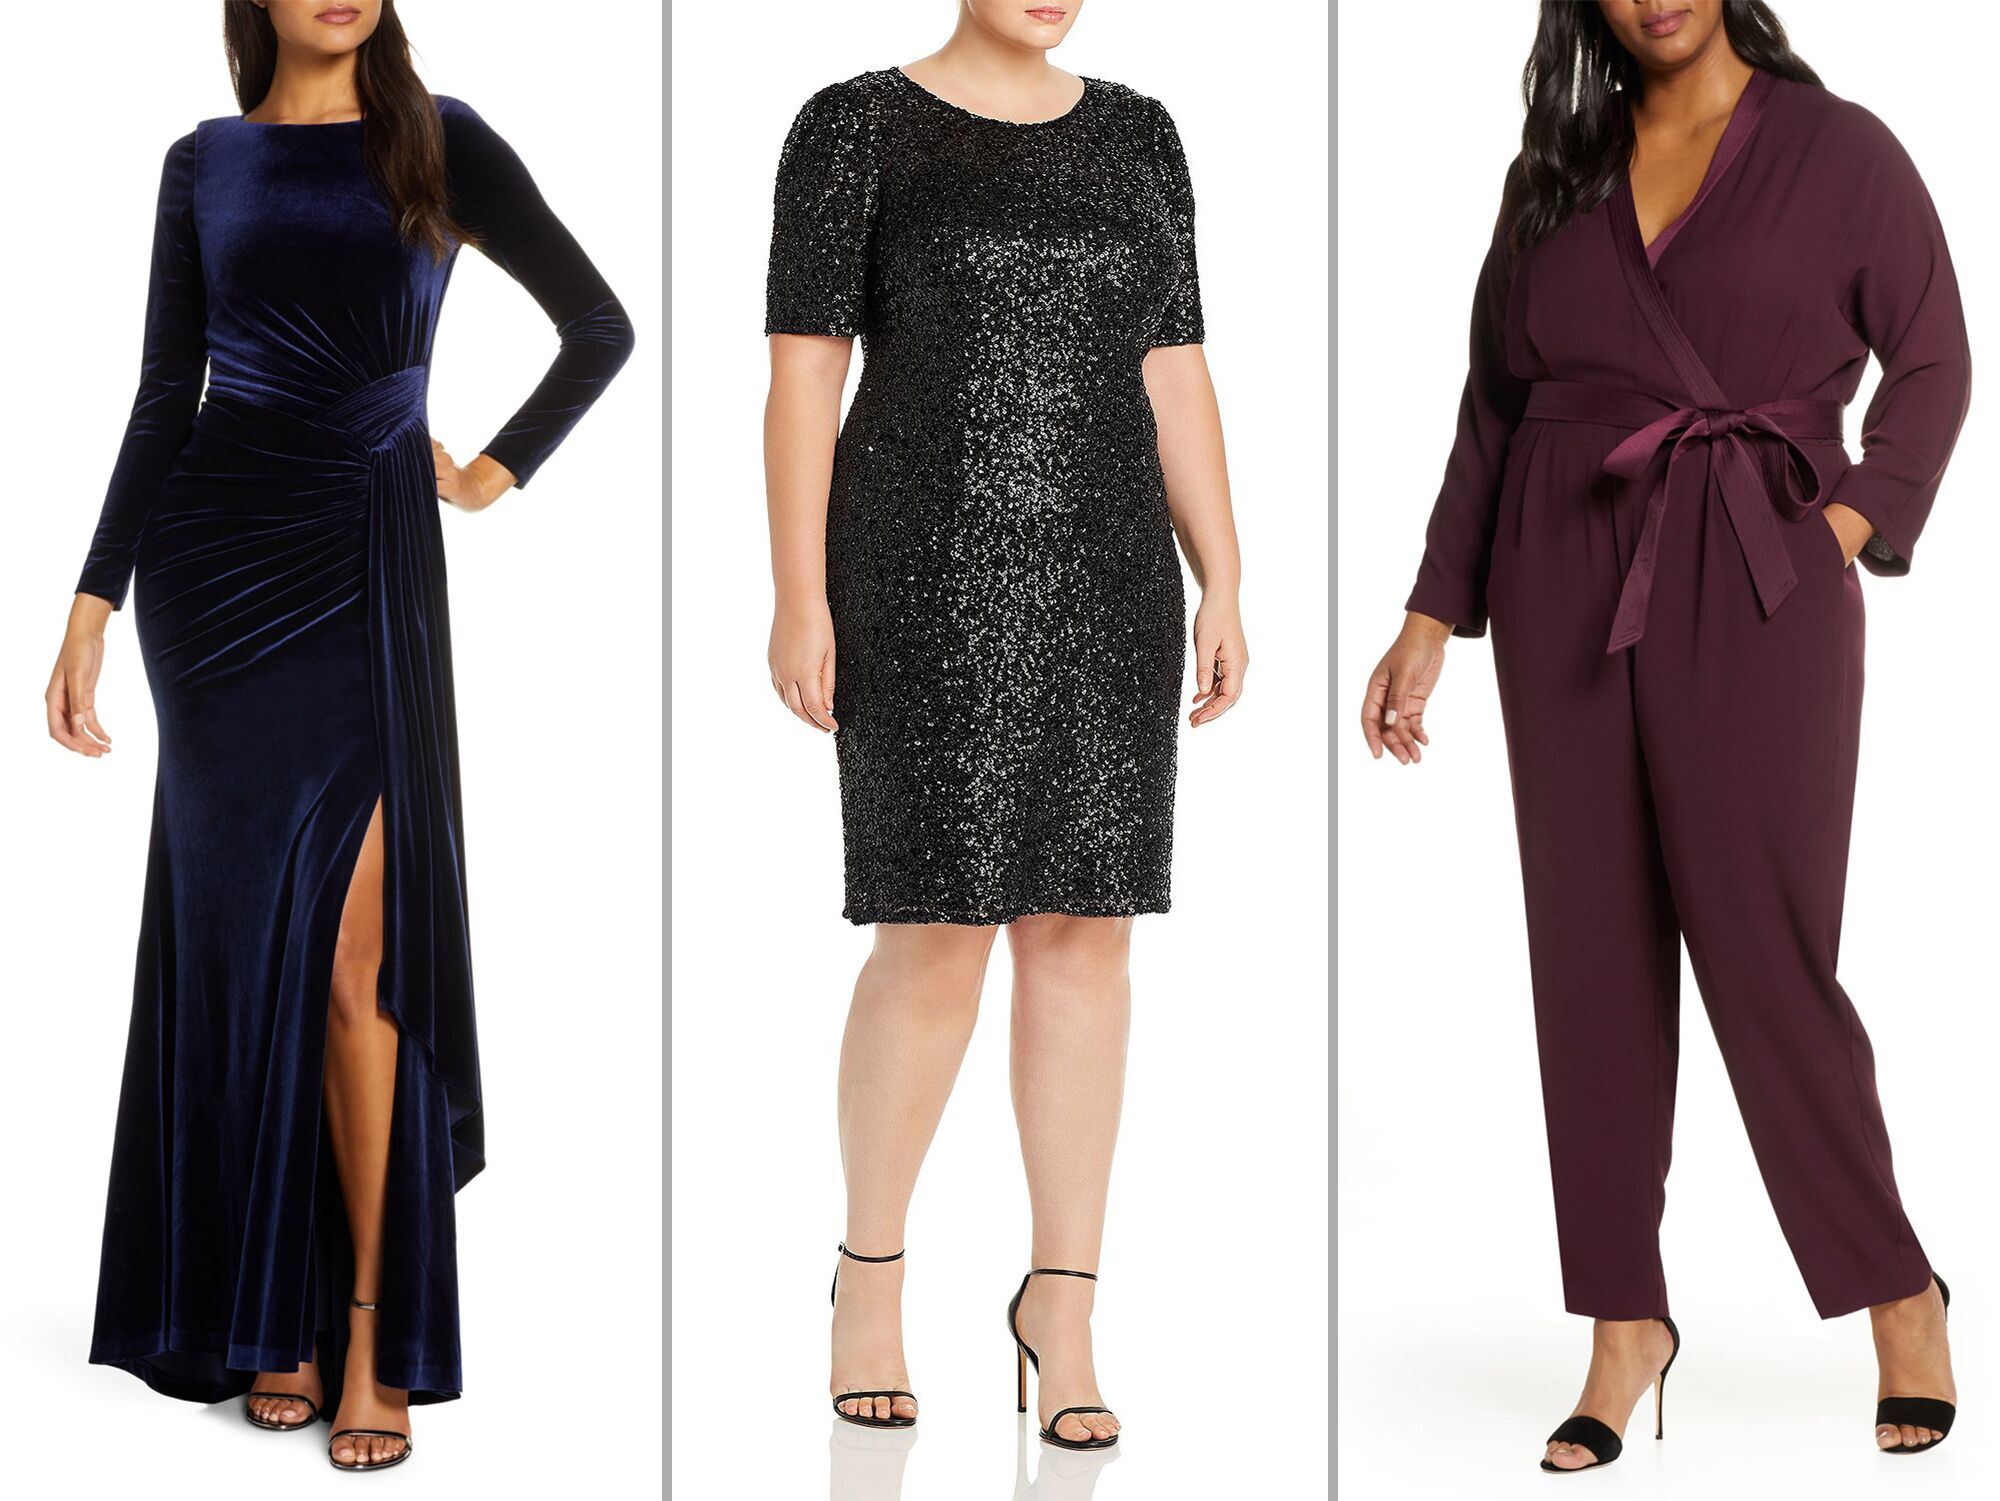 What To Wear To A Winter 2019 Wedding 65 Guest Dresses,Dresses For Attending Weddings